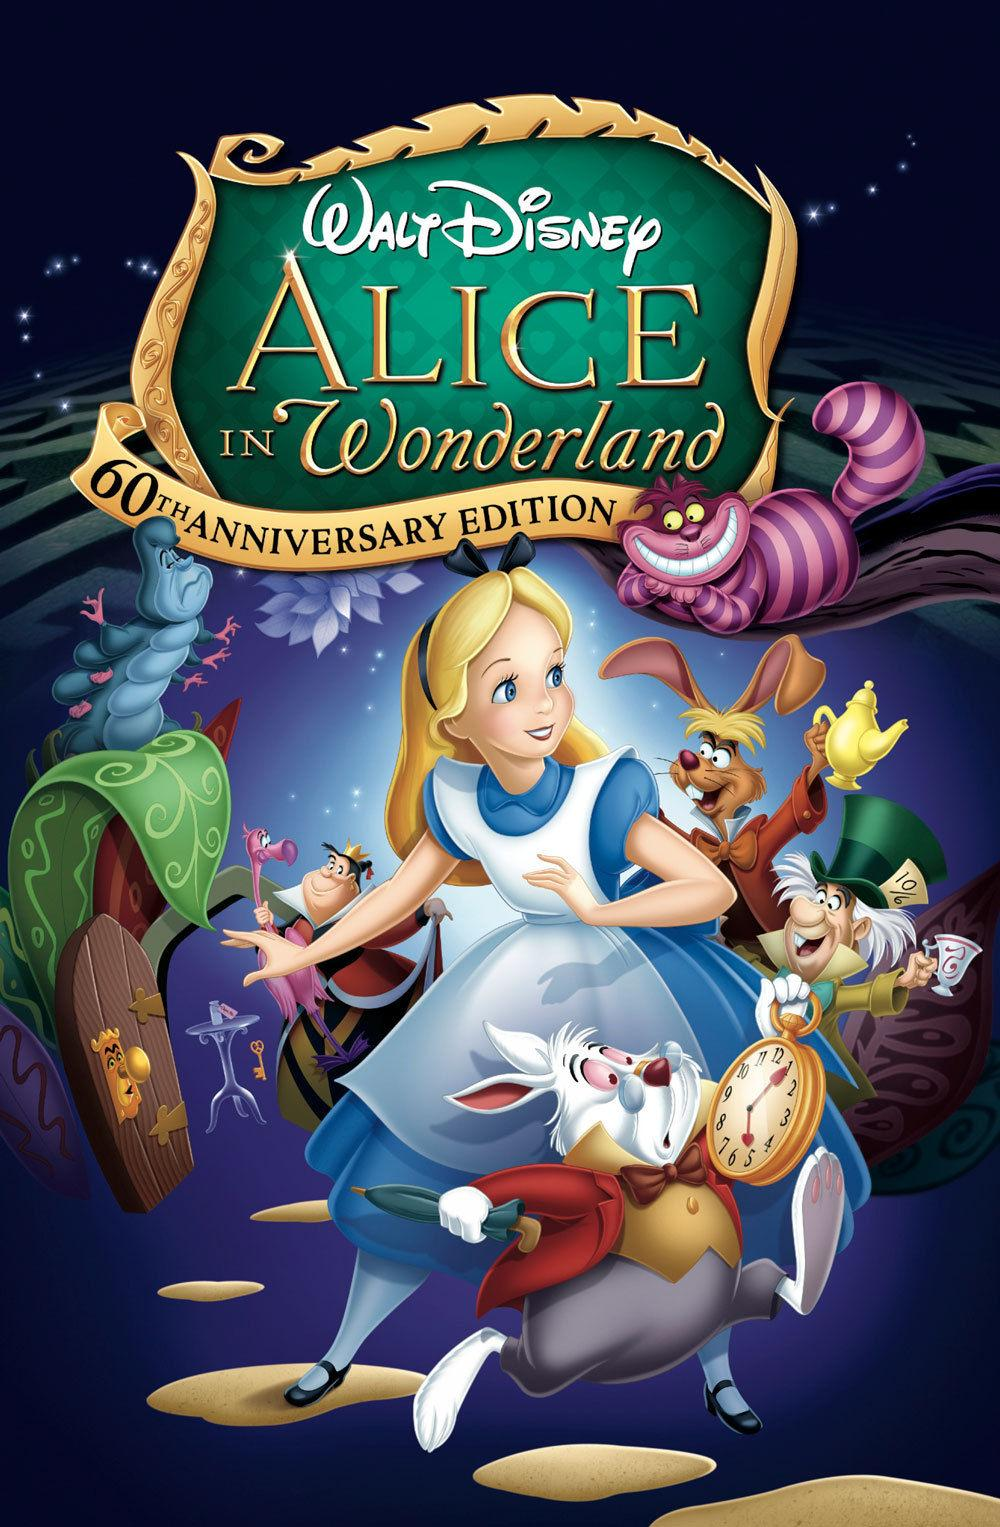 alice in wonderland 1951 this disney animated feature is a classic and